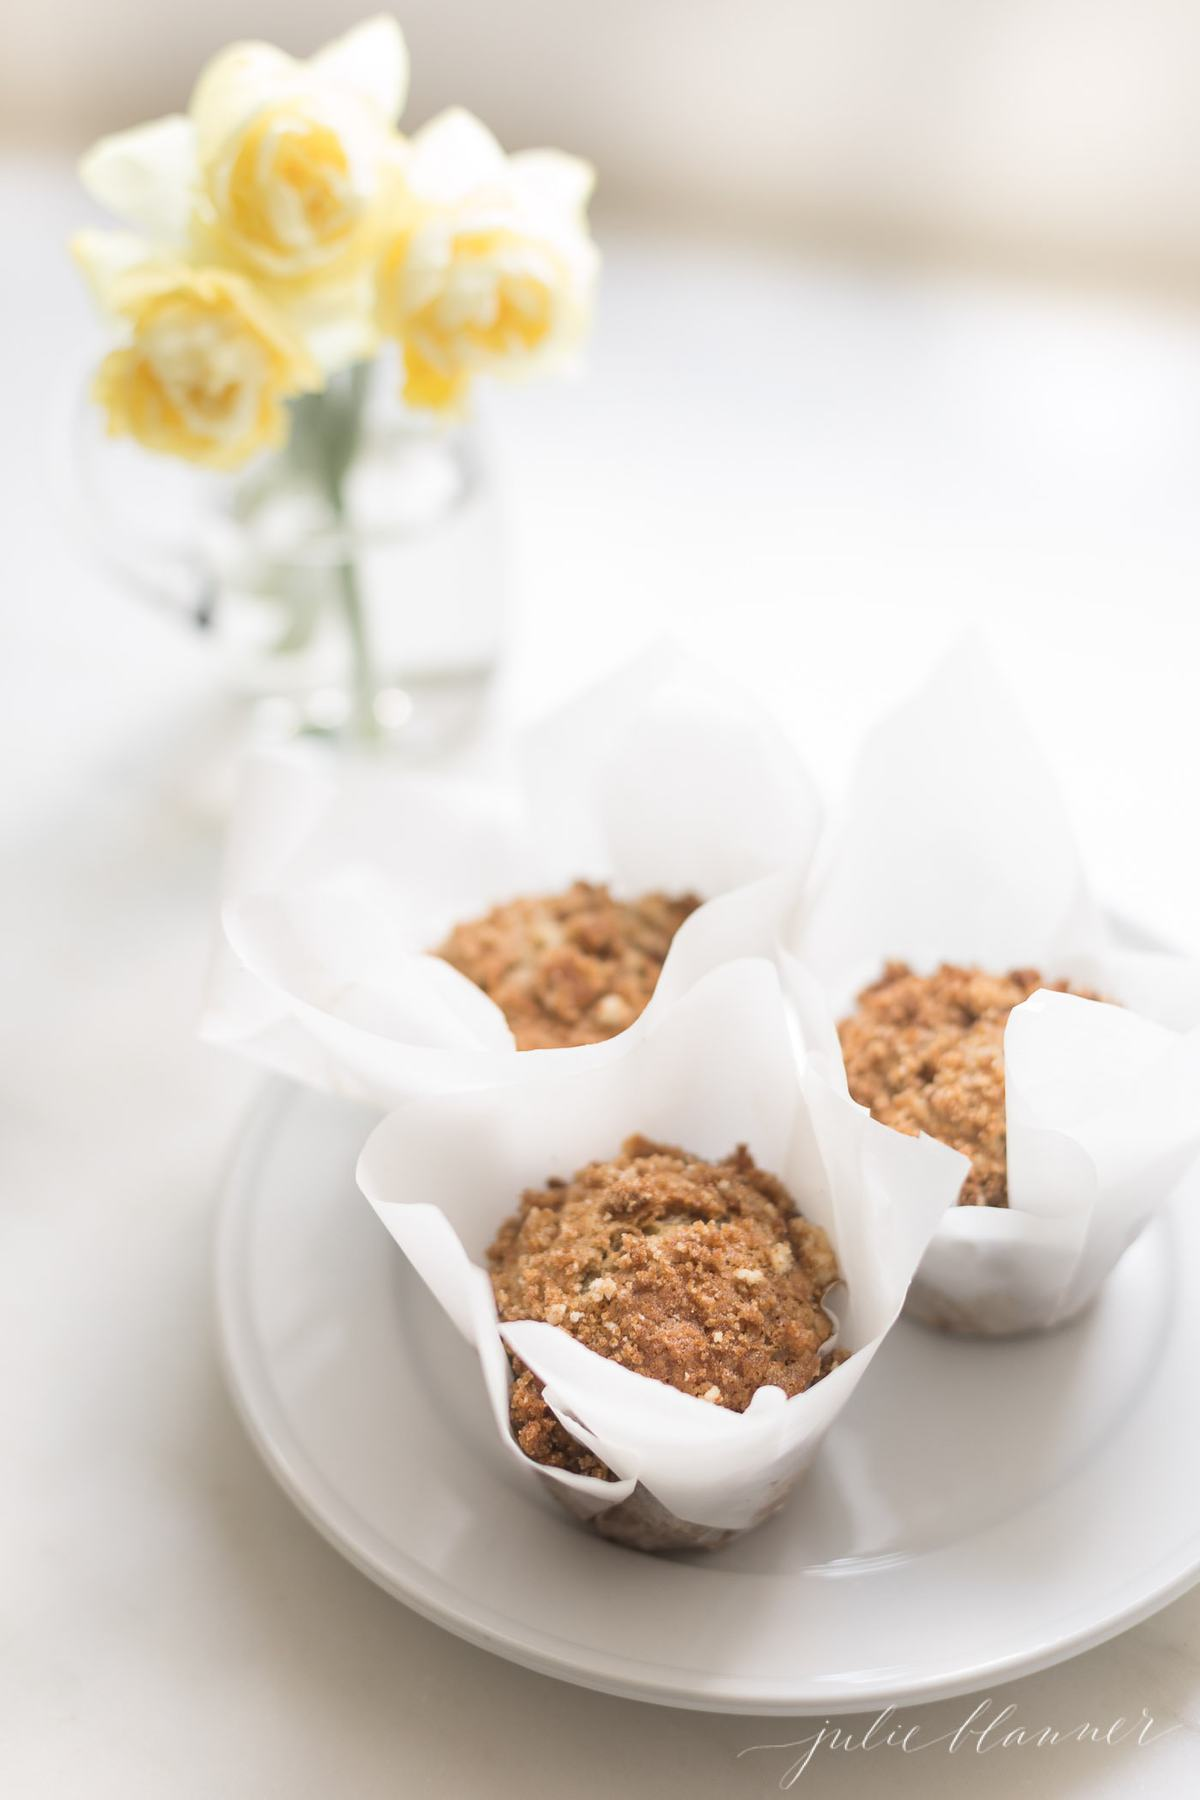 3 banana muffins on a plate with yellow flowers